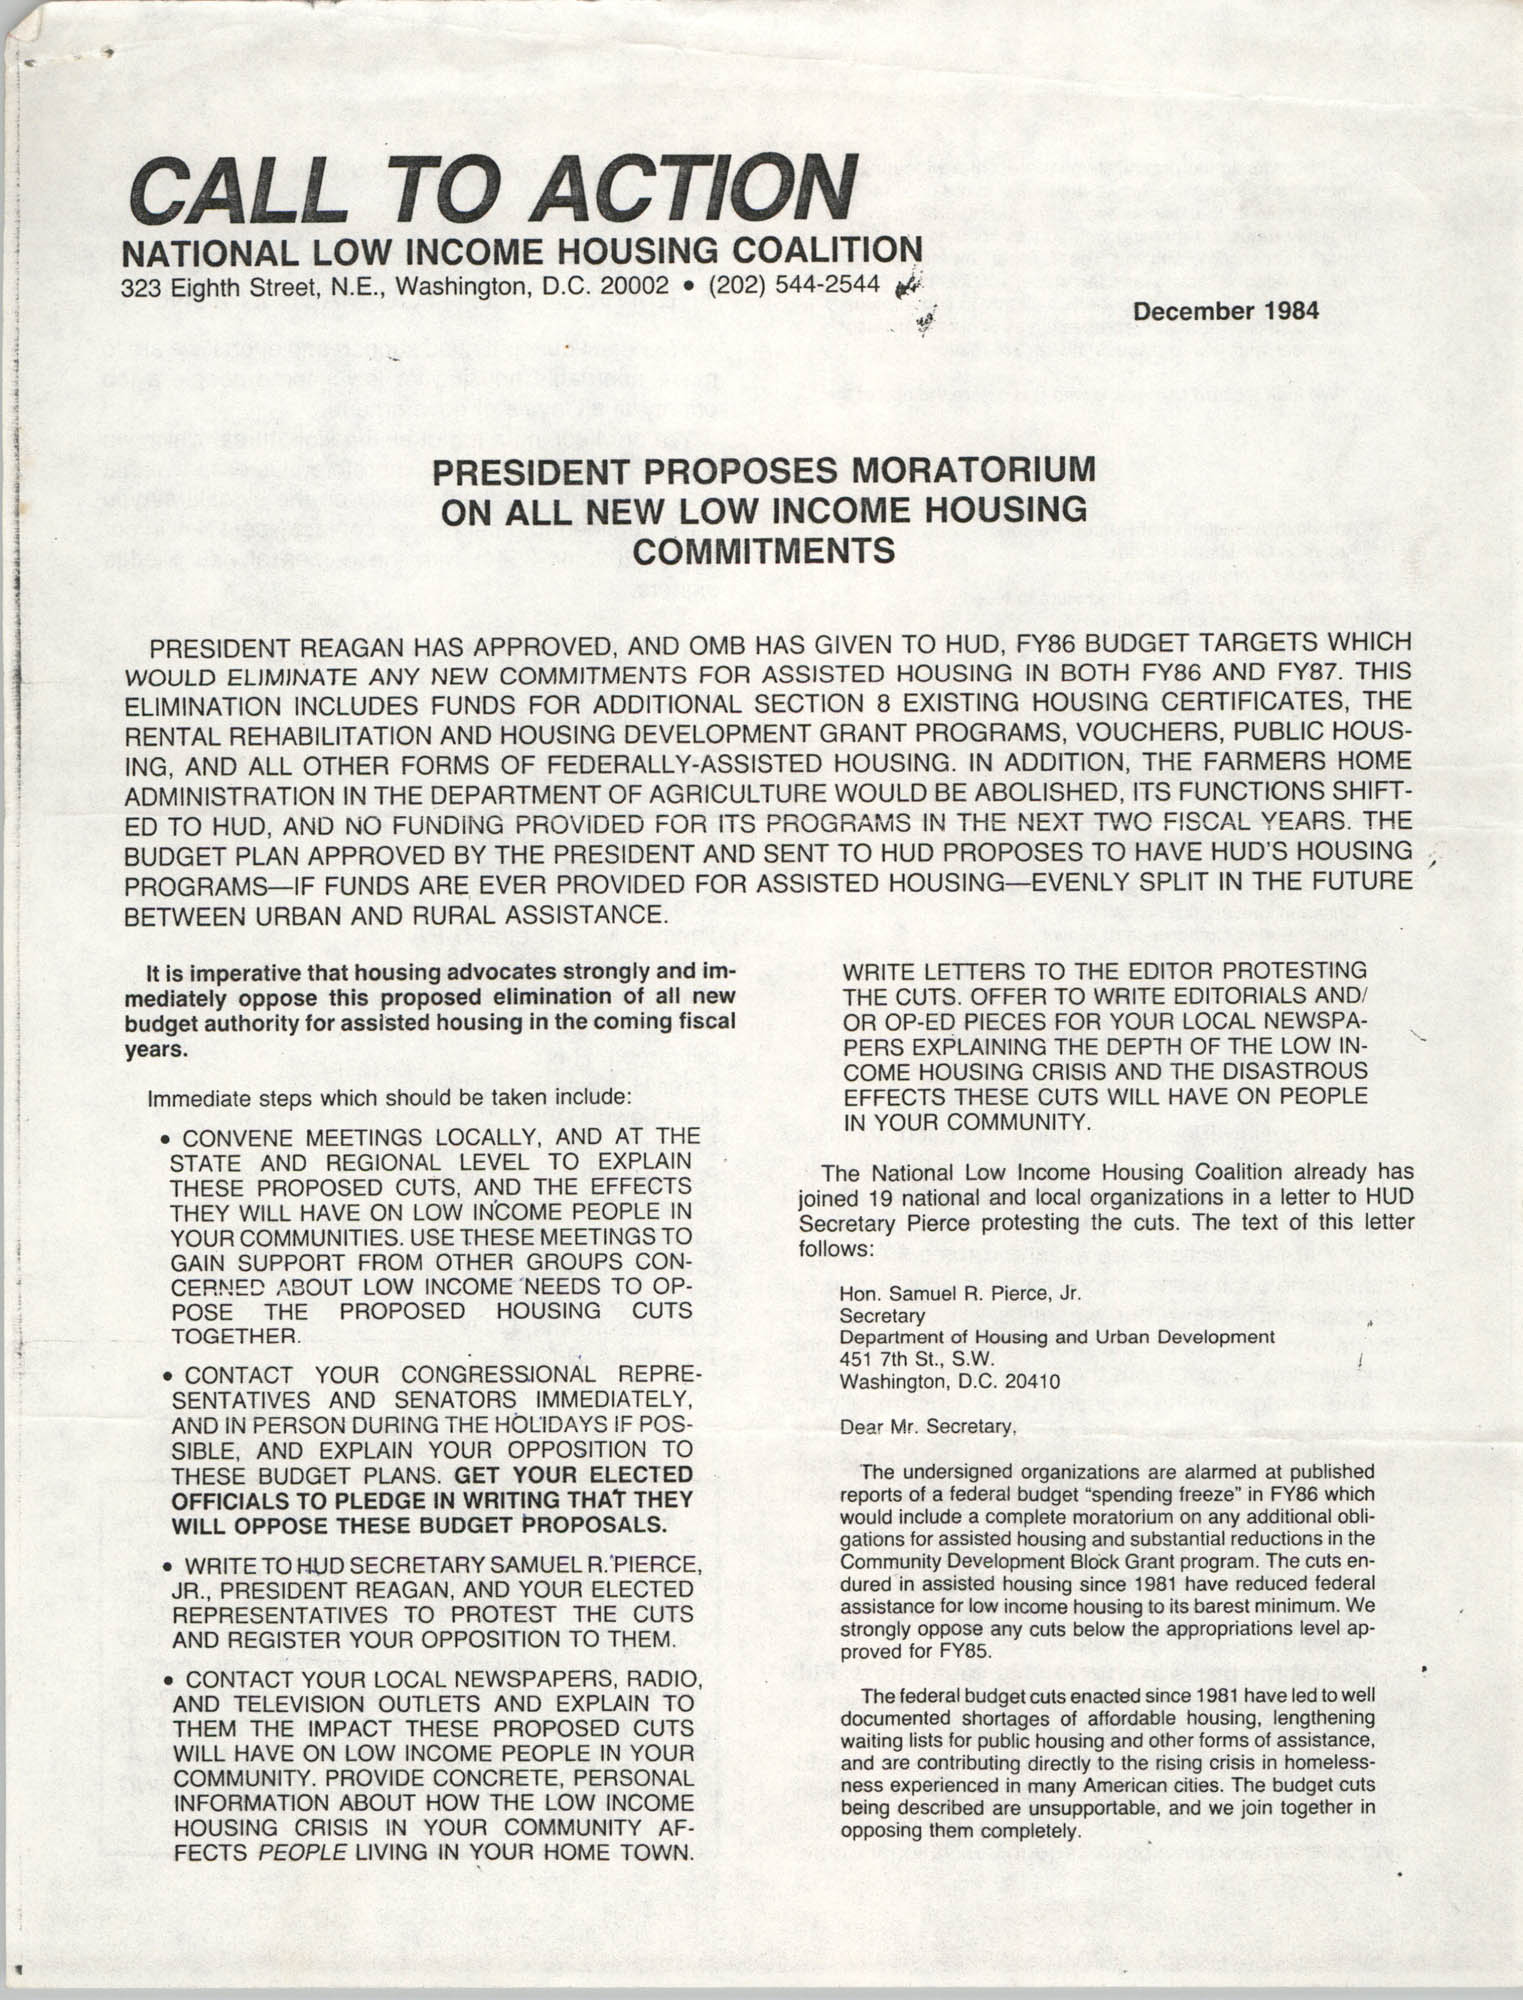 Call to Action, National Low Income Housing Coalition, December 1984